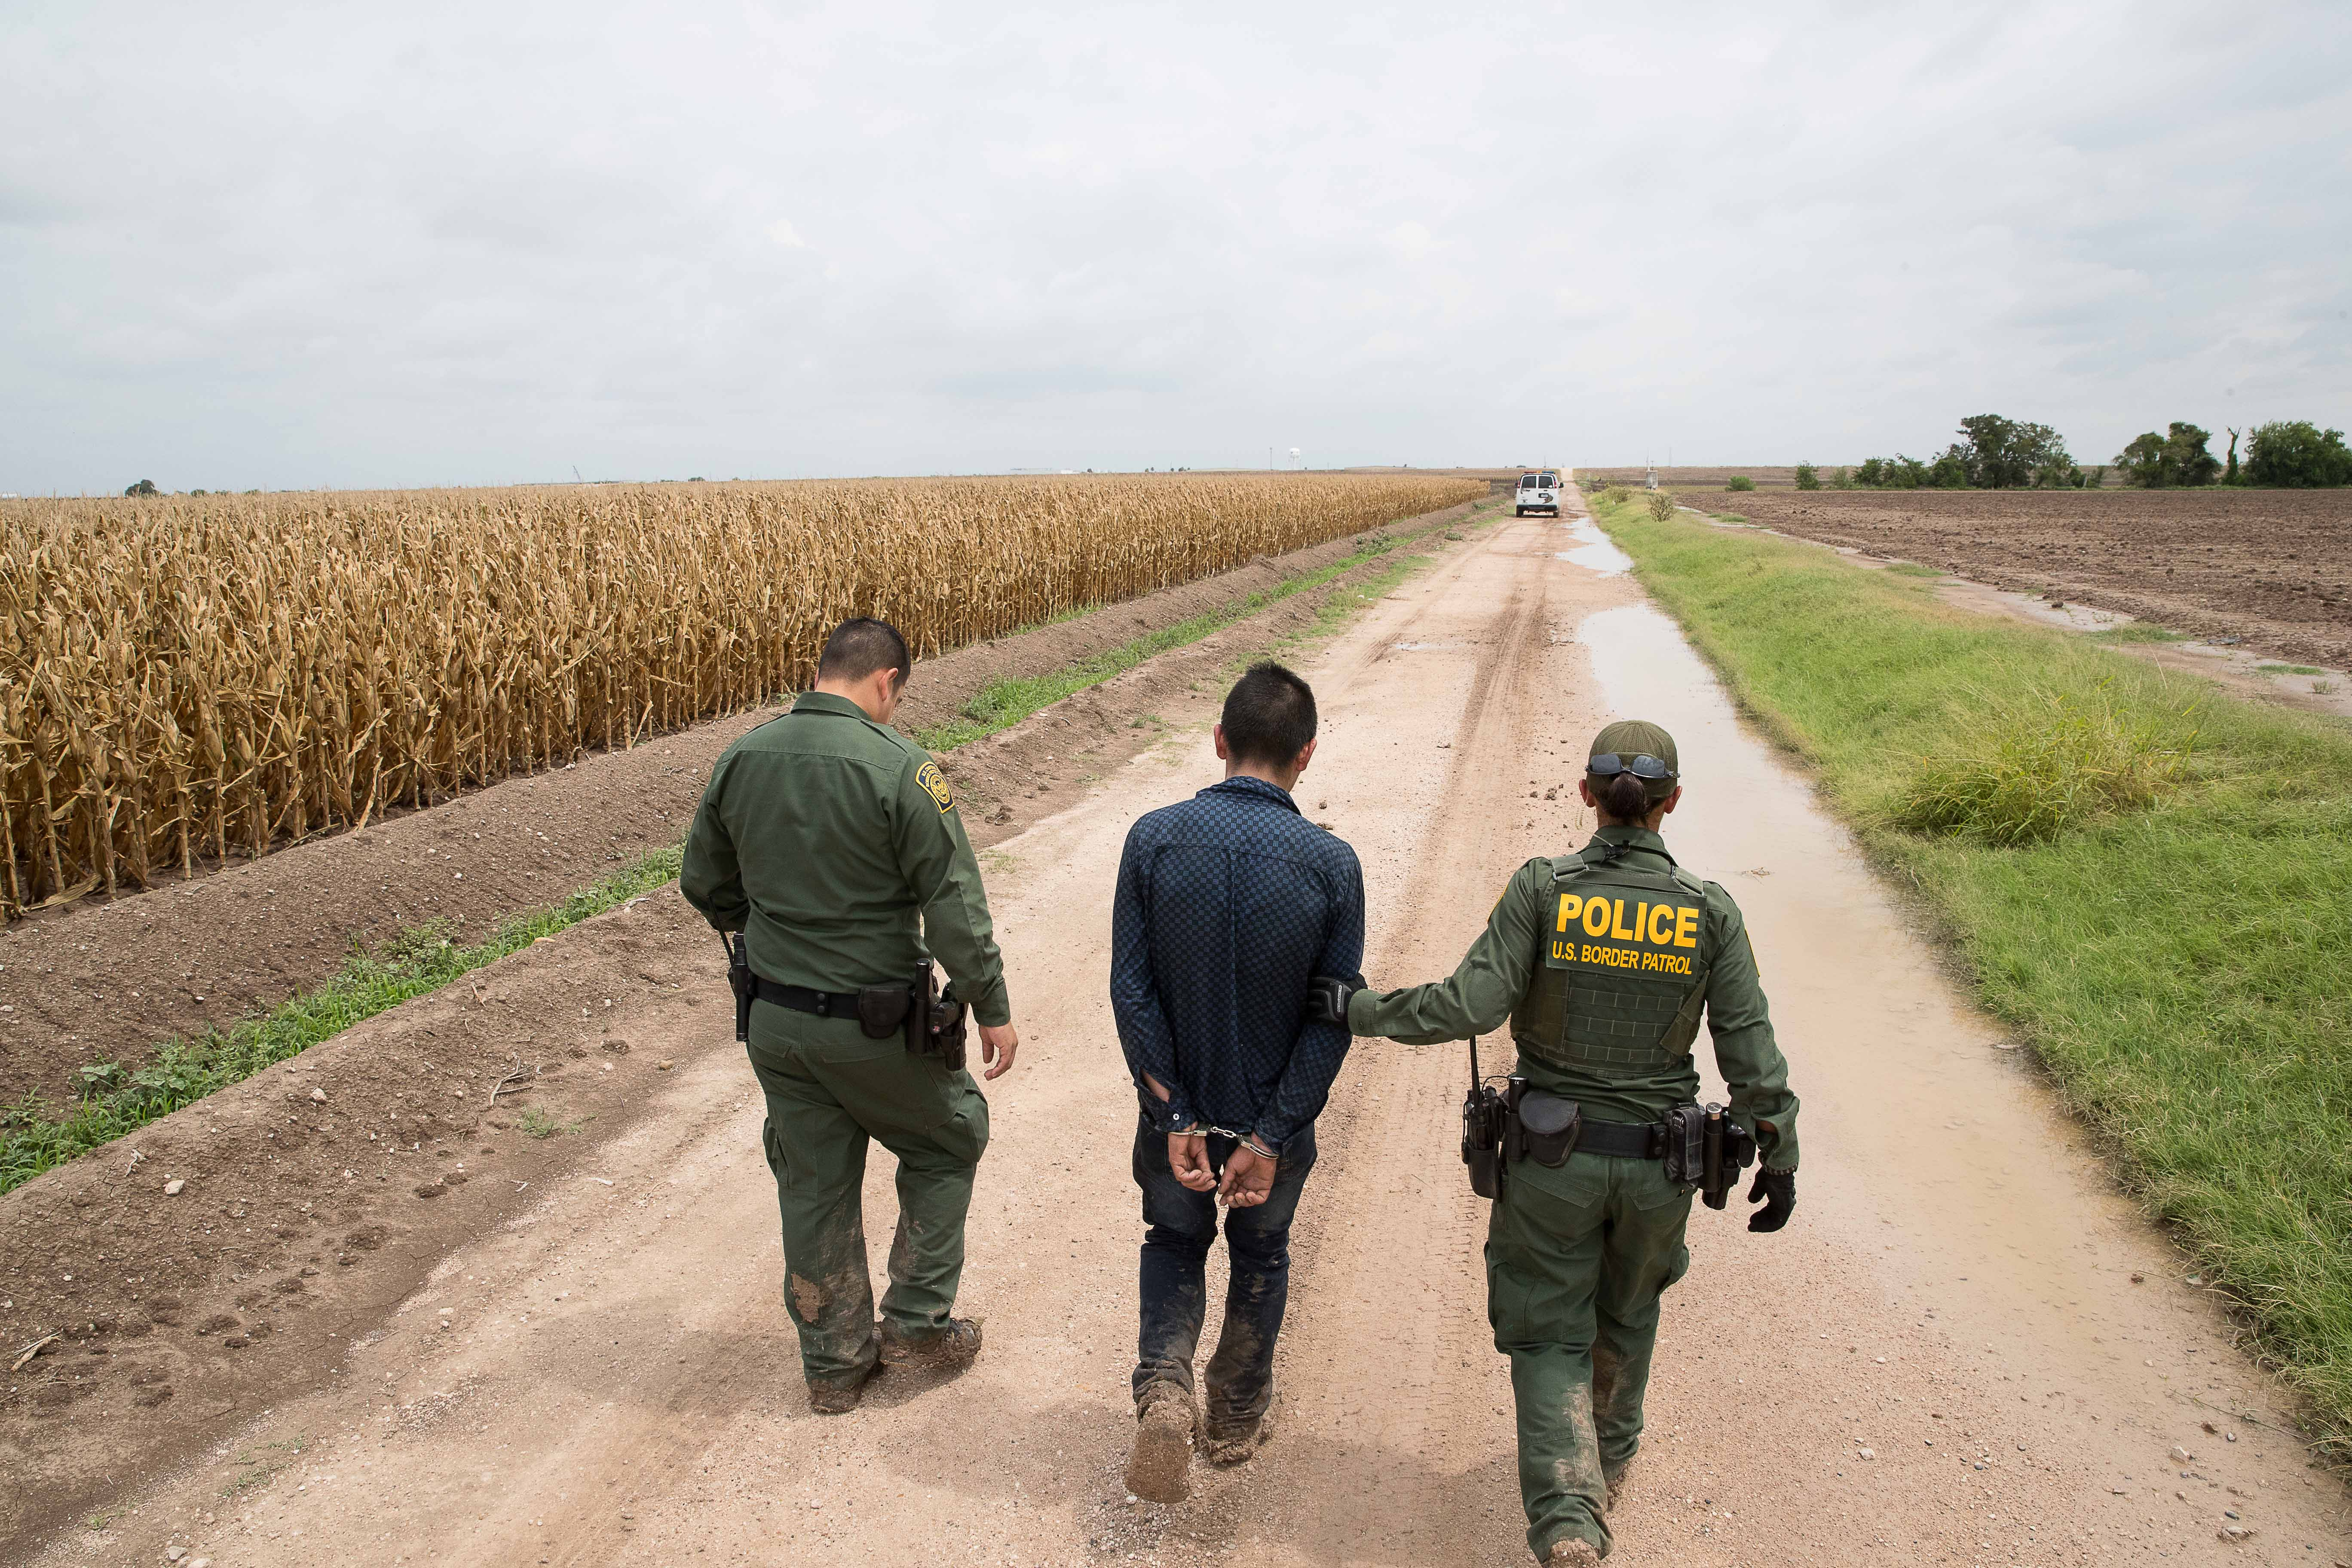 Judge says Trump team '100 percent' responsible for finding deported immigrant parents